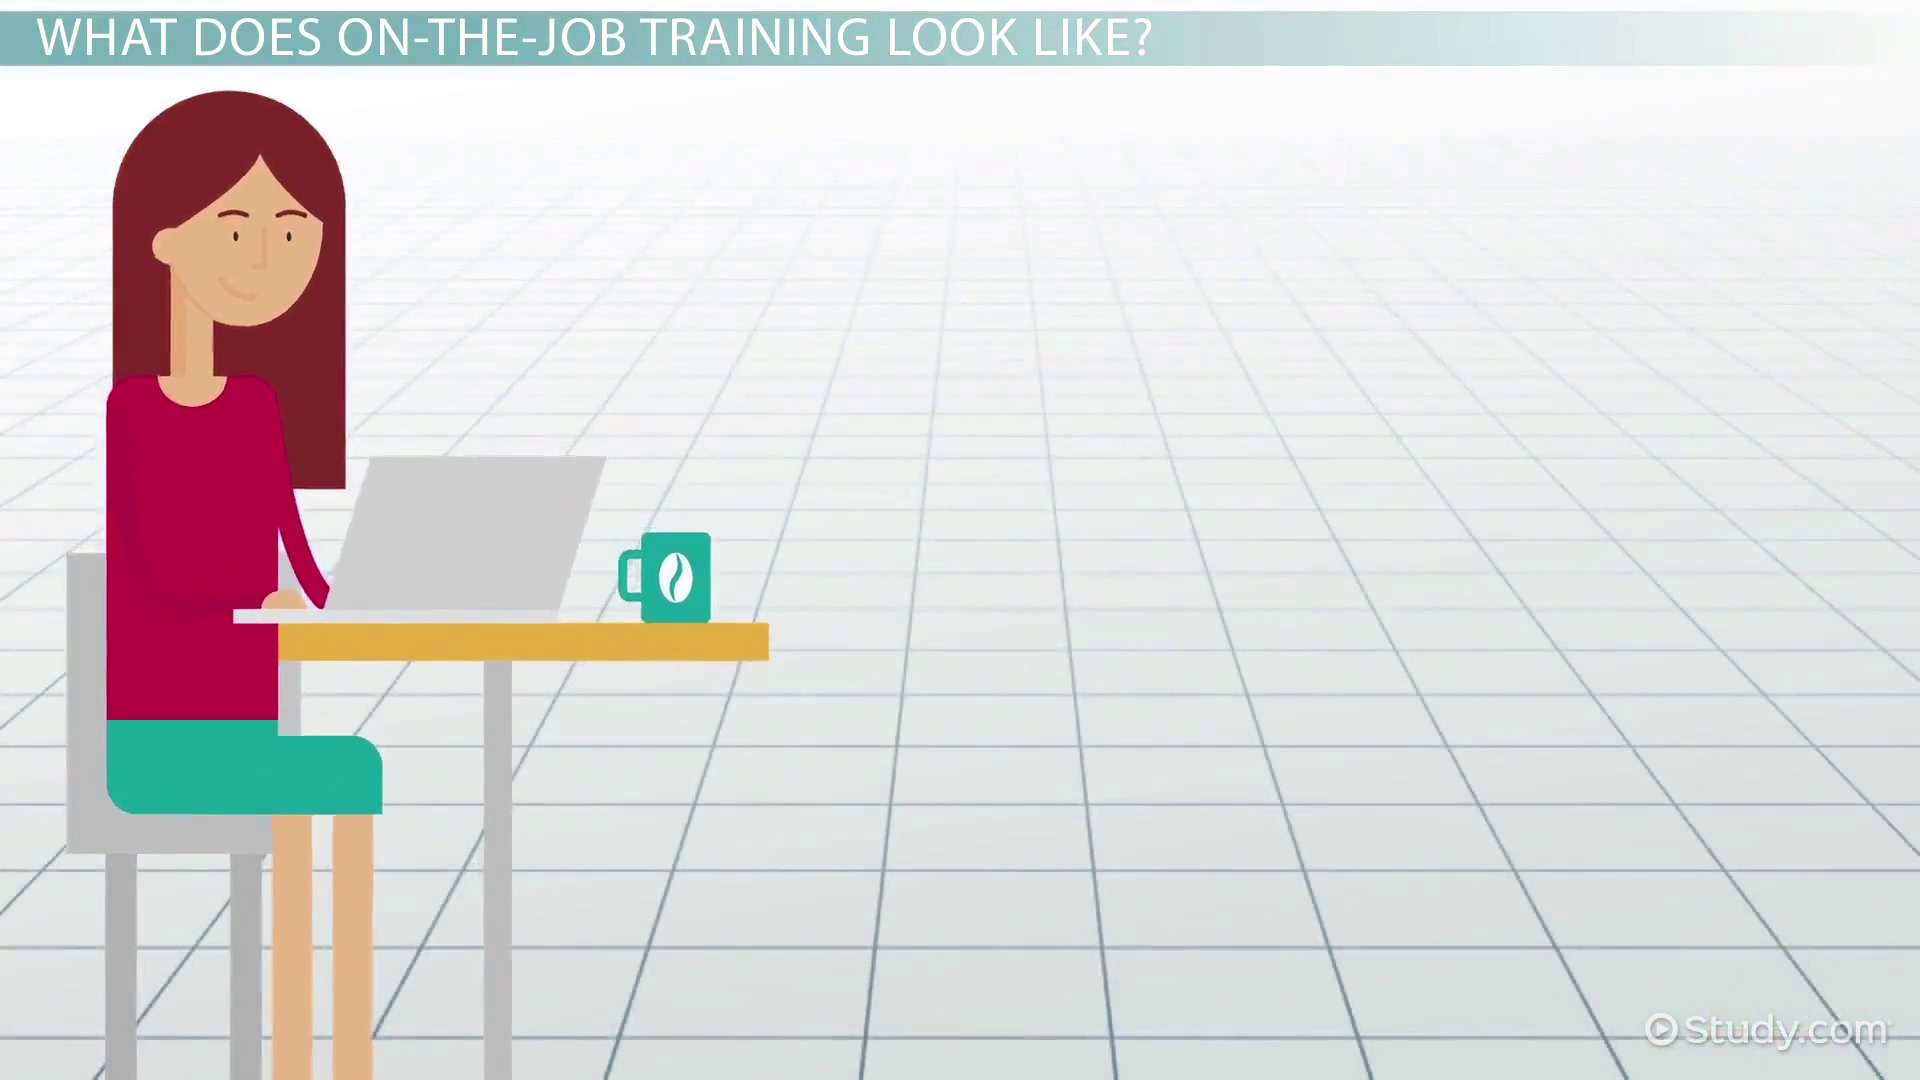 """on the job training guidelines Guidelines for developing an on-the-job training program introduction federal regulation 23 cfr 230 appendix b, """"training special provisions"""", is."""